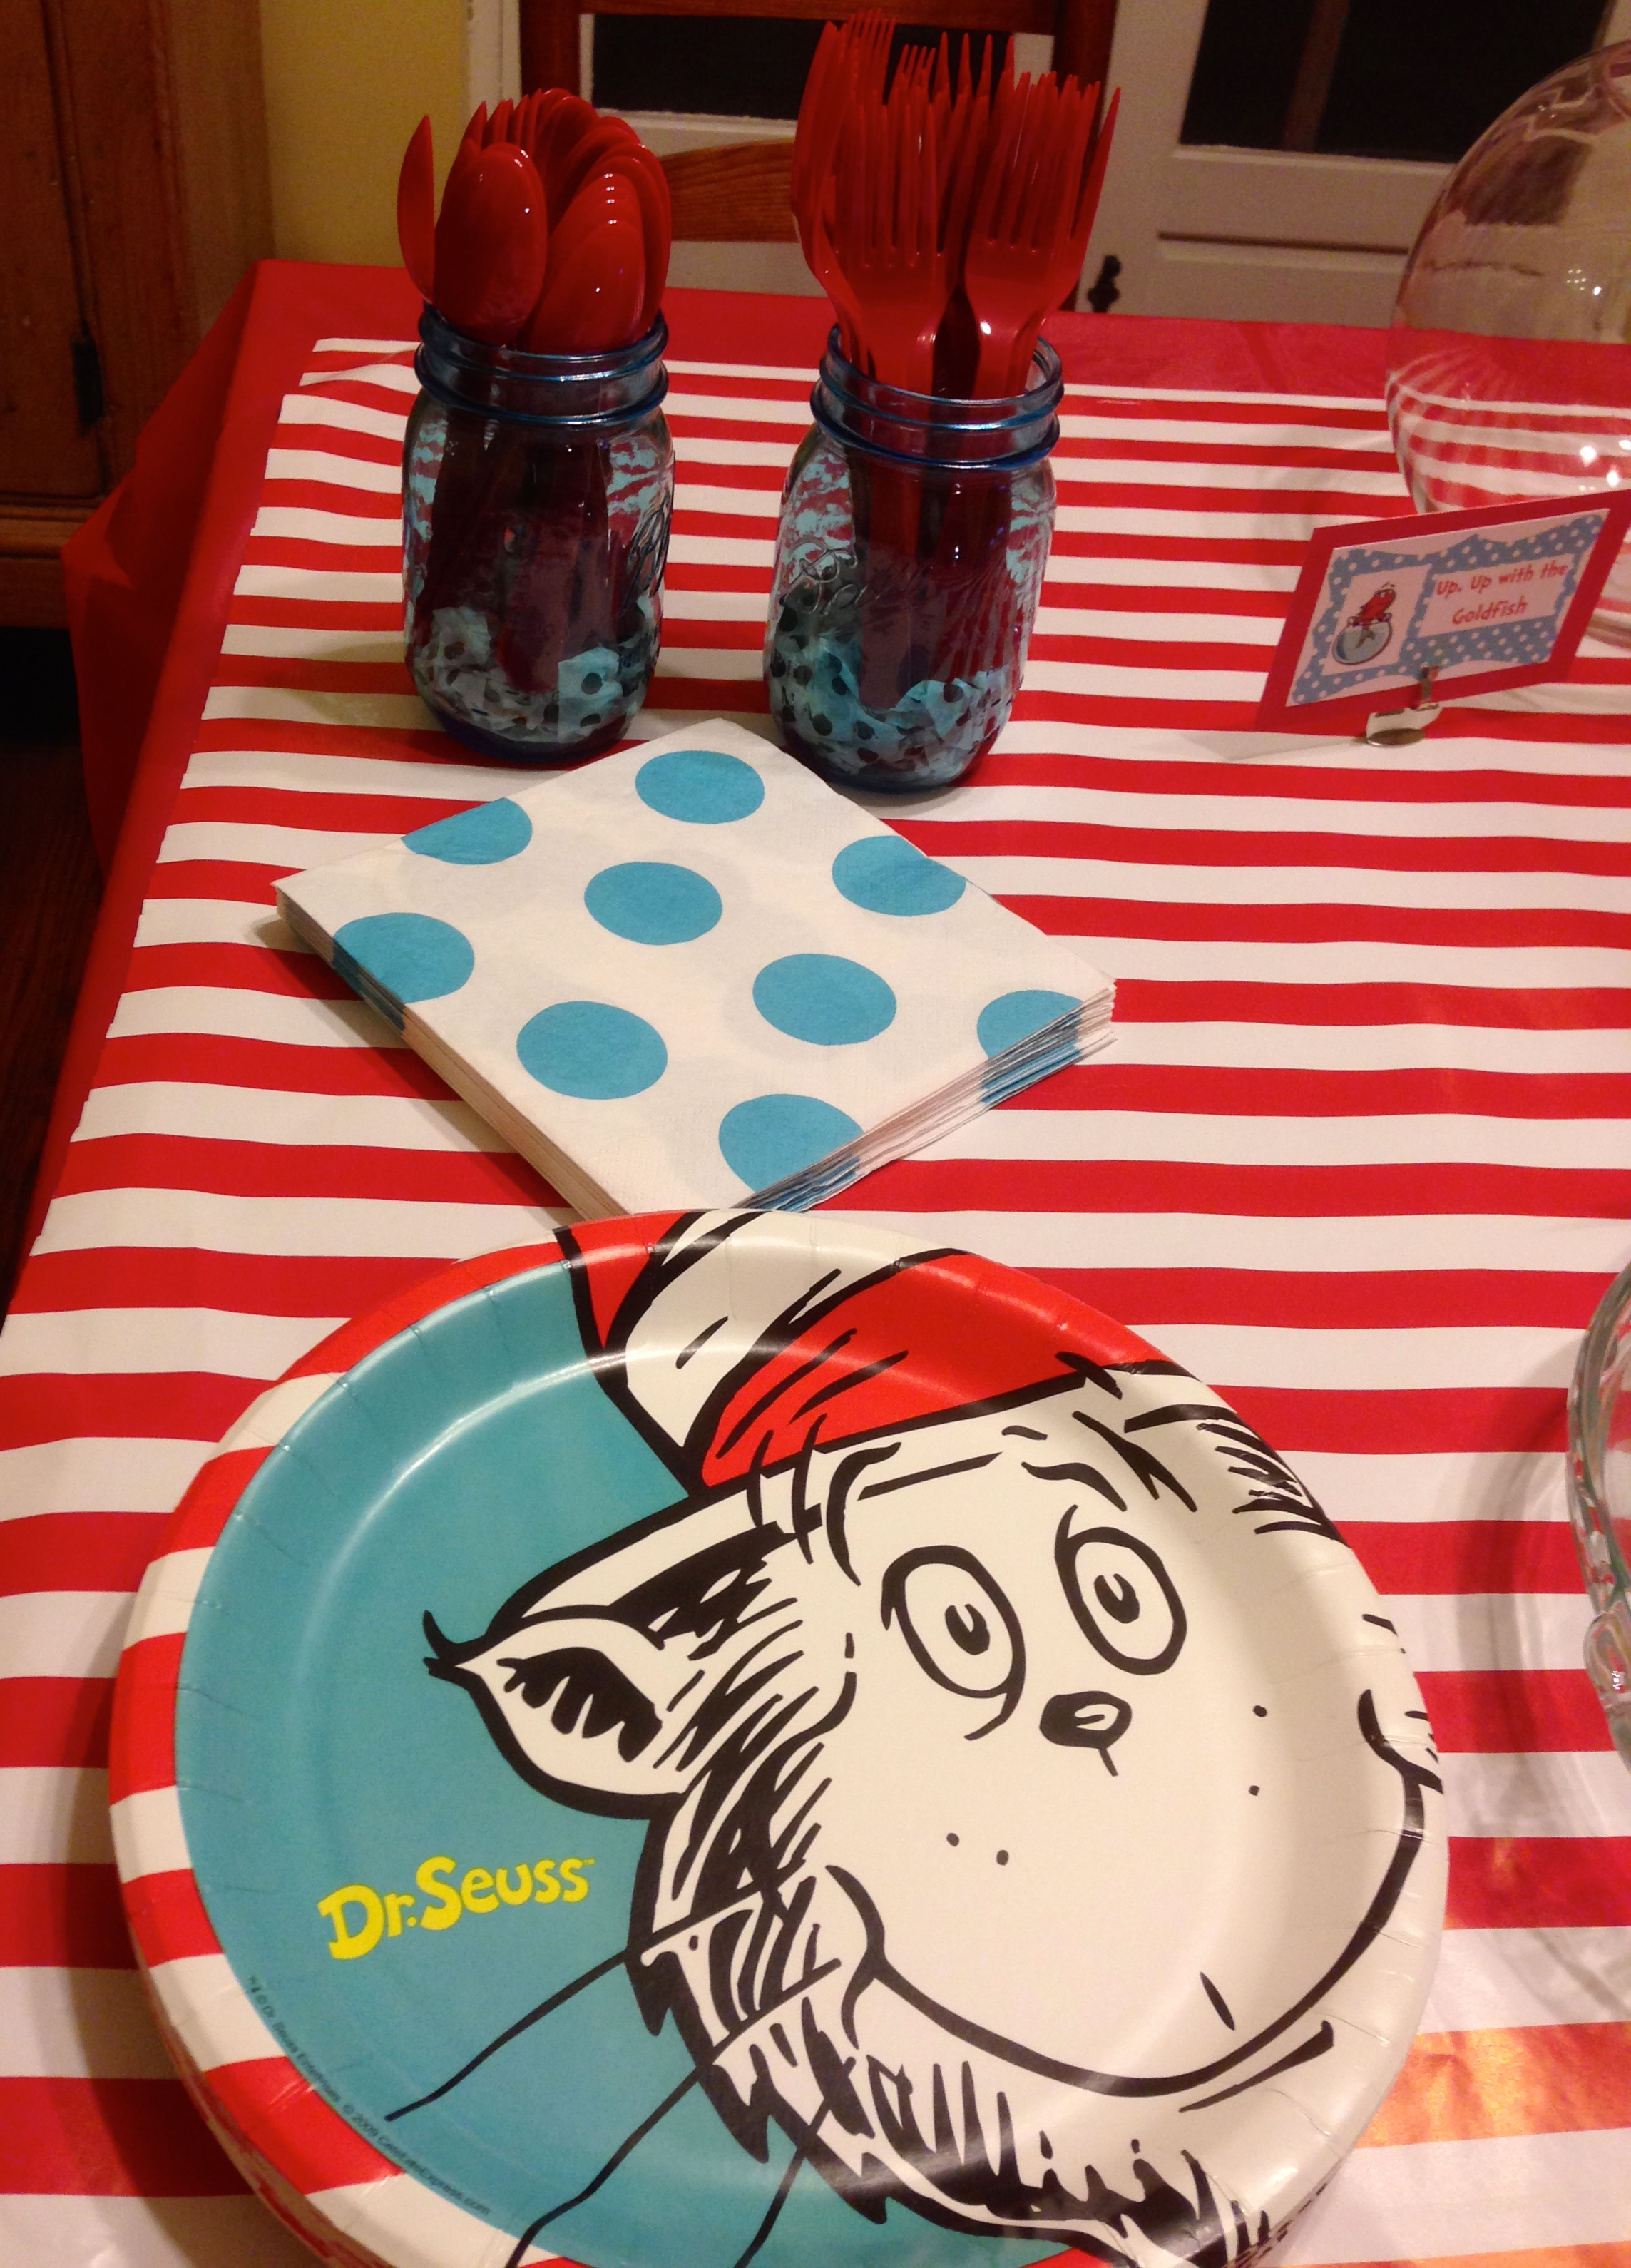 I Used A Plastic Red Tablecloth And Then White Striped Wrapping Paper For The Table